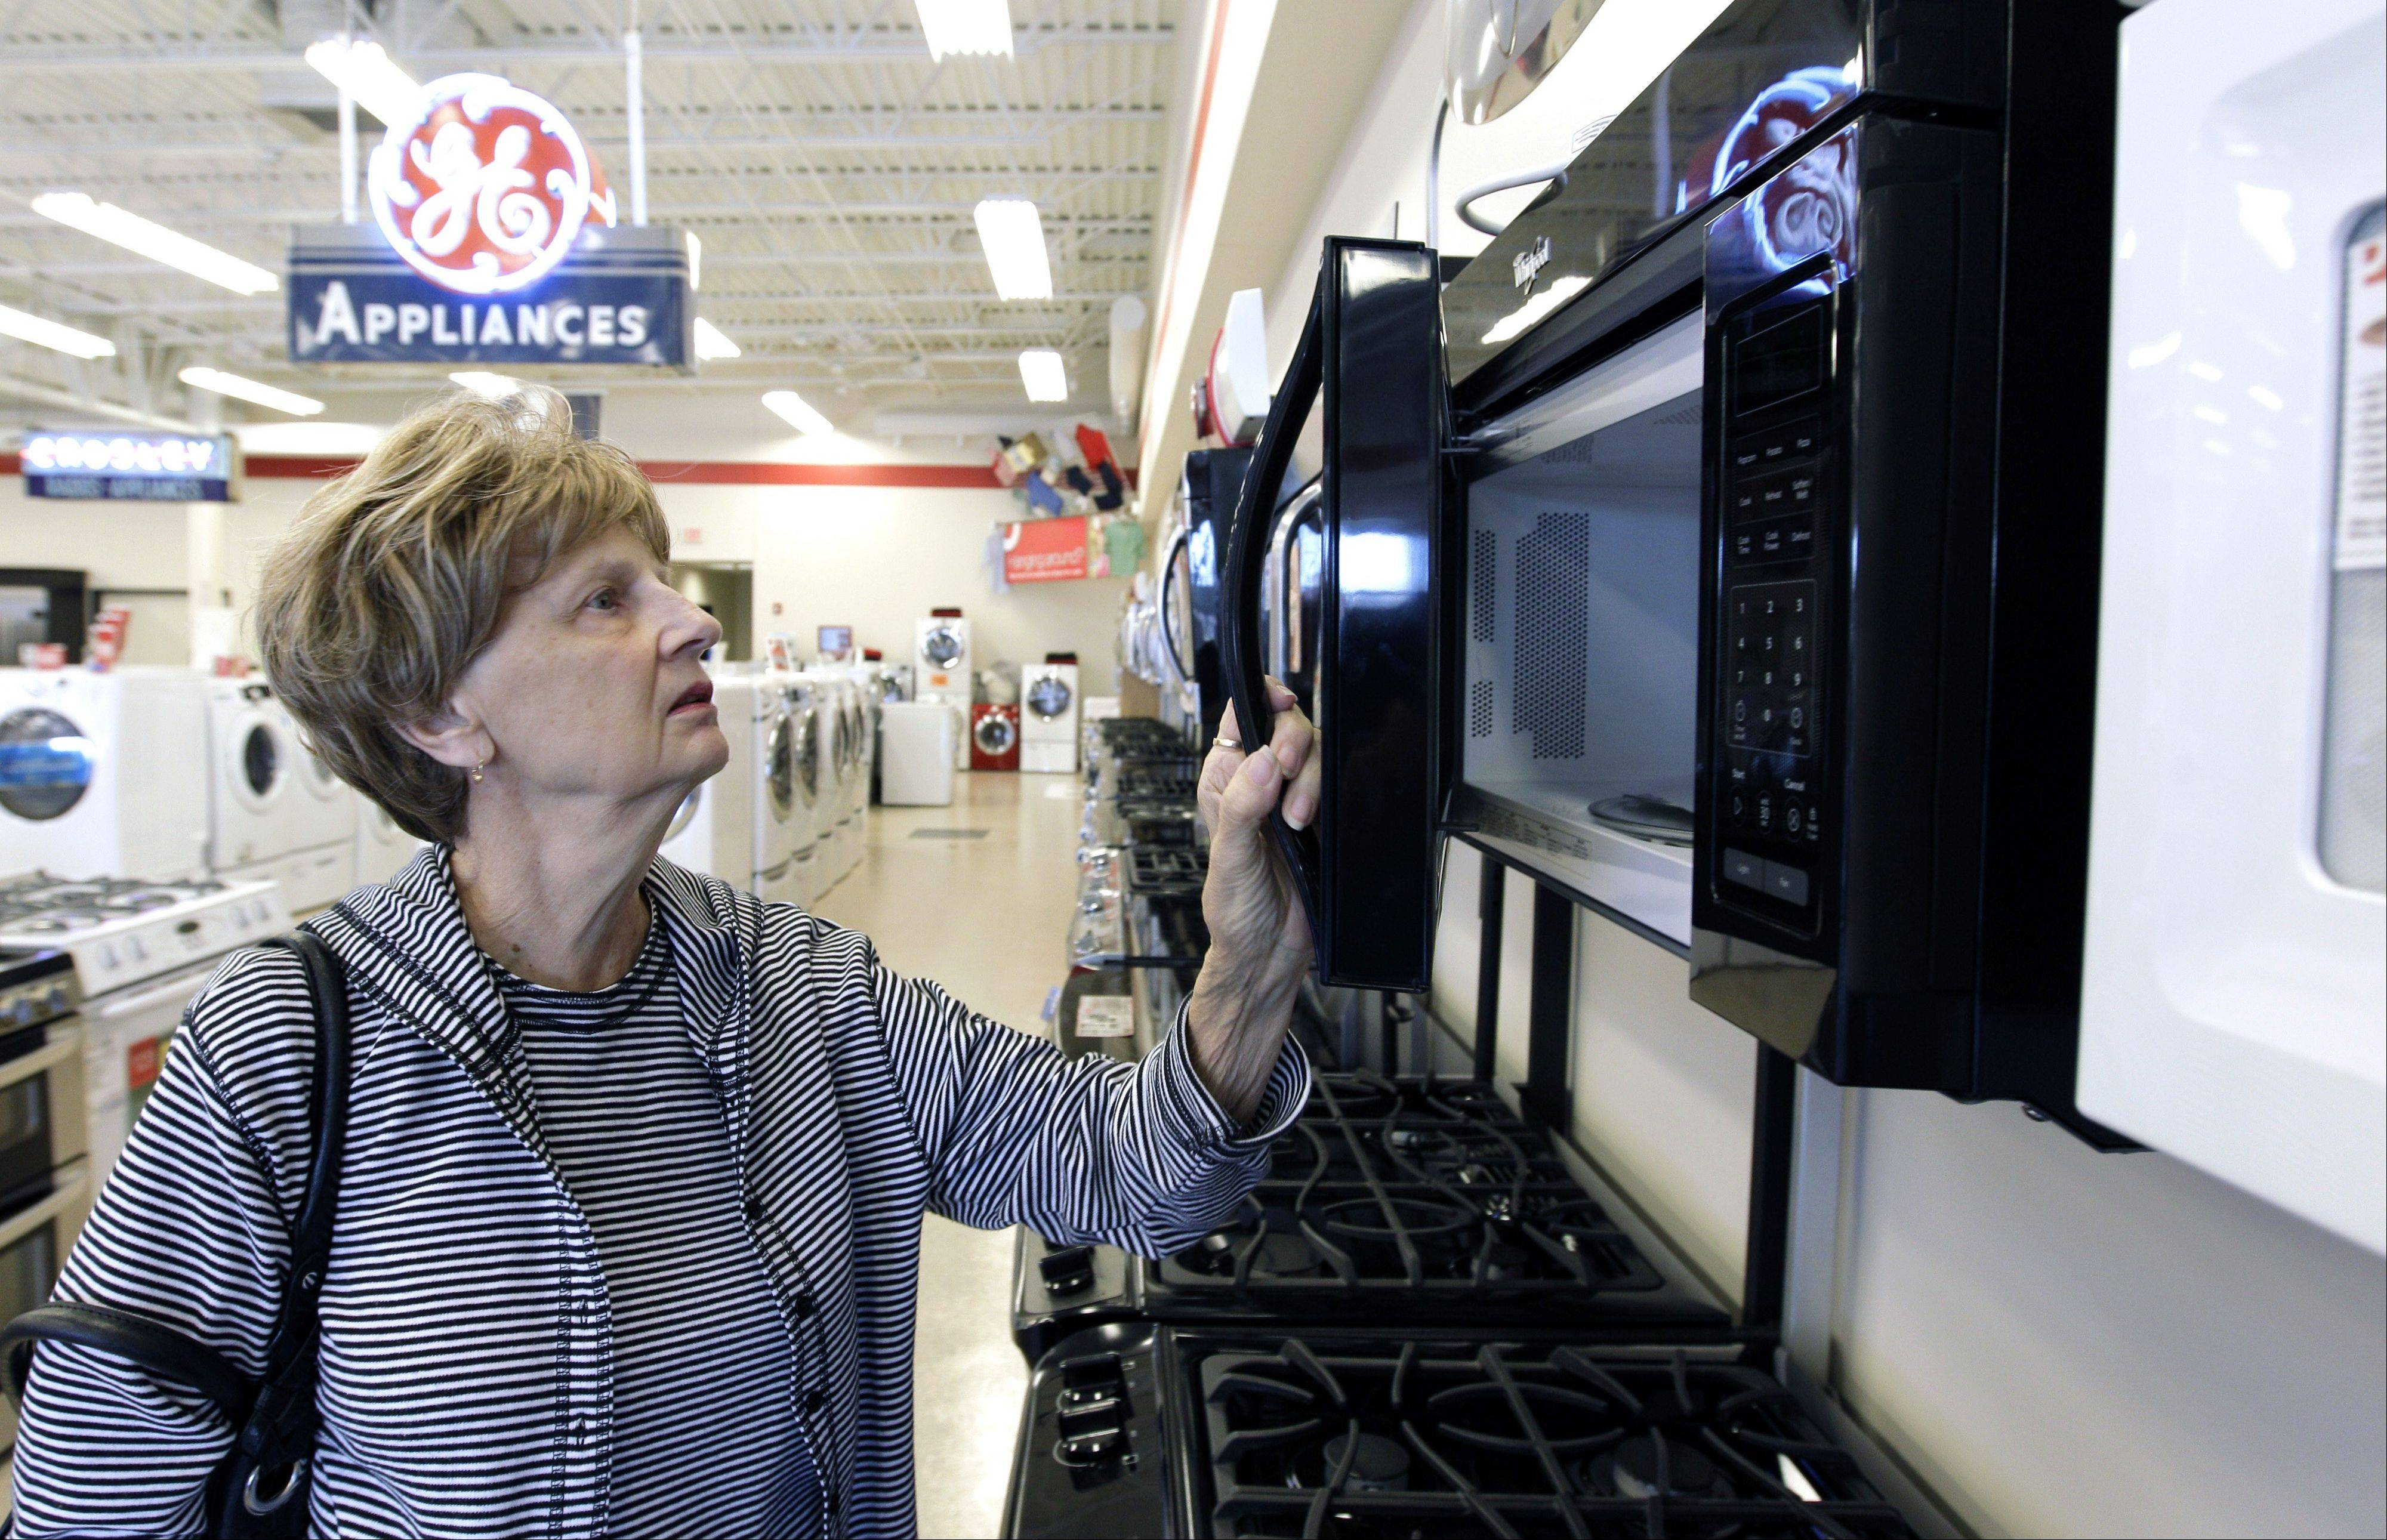 Mary Ann Rotolo shops for a microwave oven at Orville�s Home Appliances store in Amherst, N.Y. U.S. companies in October increased their orders of machinery and equipment that signal investment plans by the largest amount in five months, a hopeful sign for future economic growth.